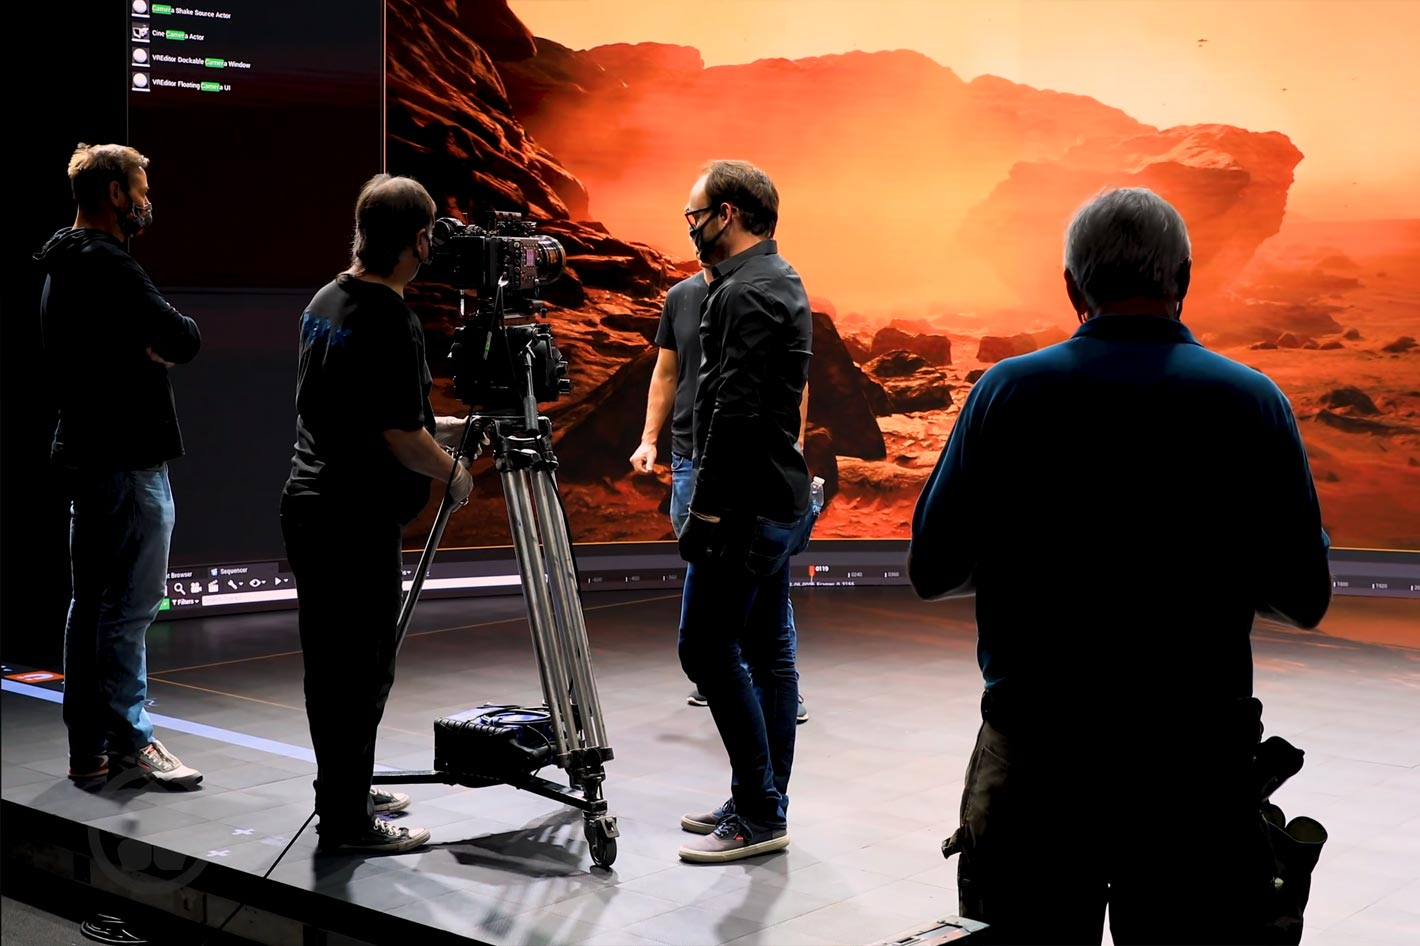 Gods of Mars: a sci-fi epic made with Unreal and Virtual Production